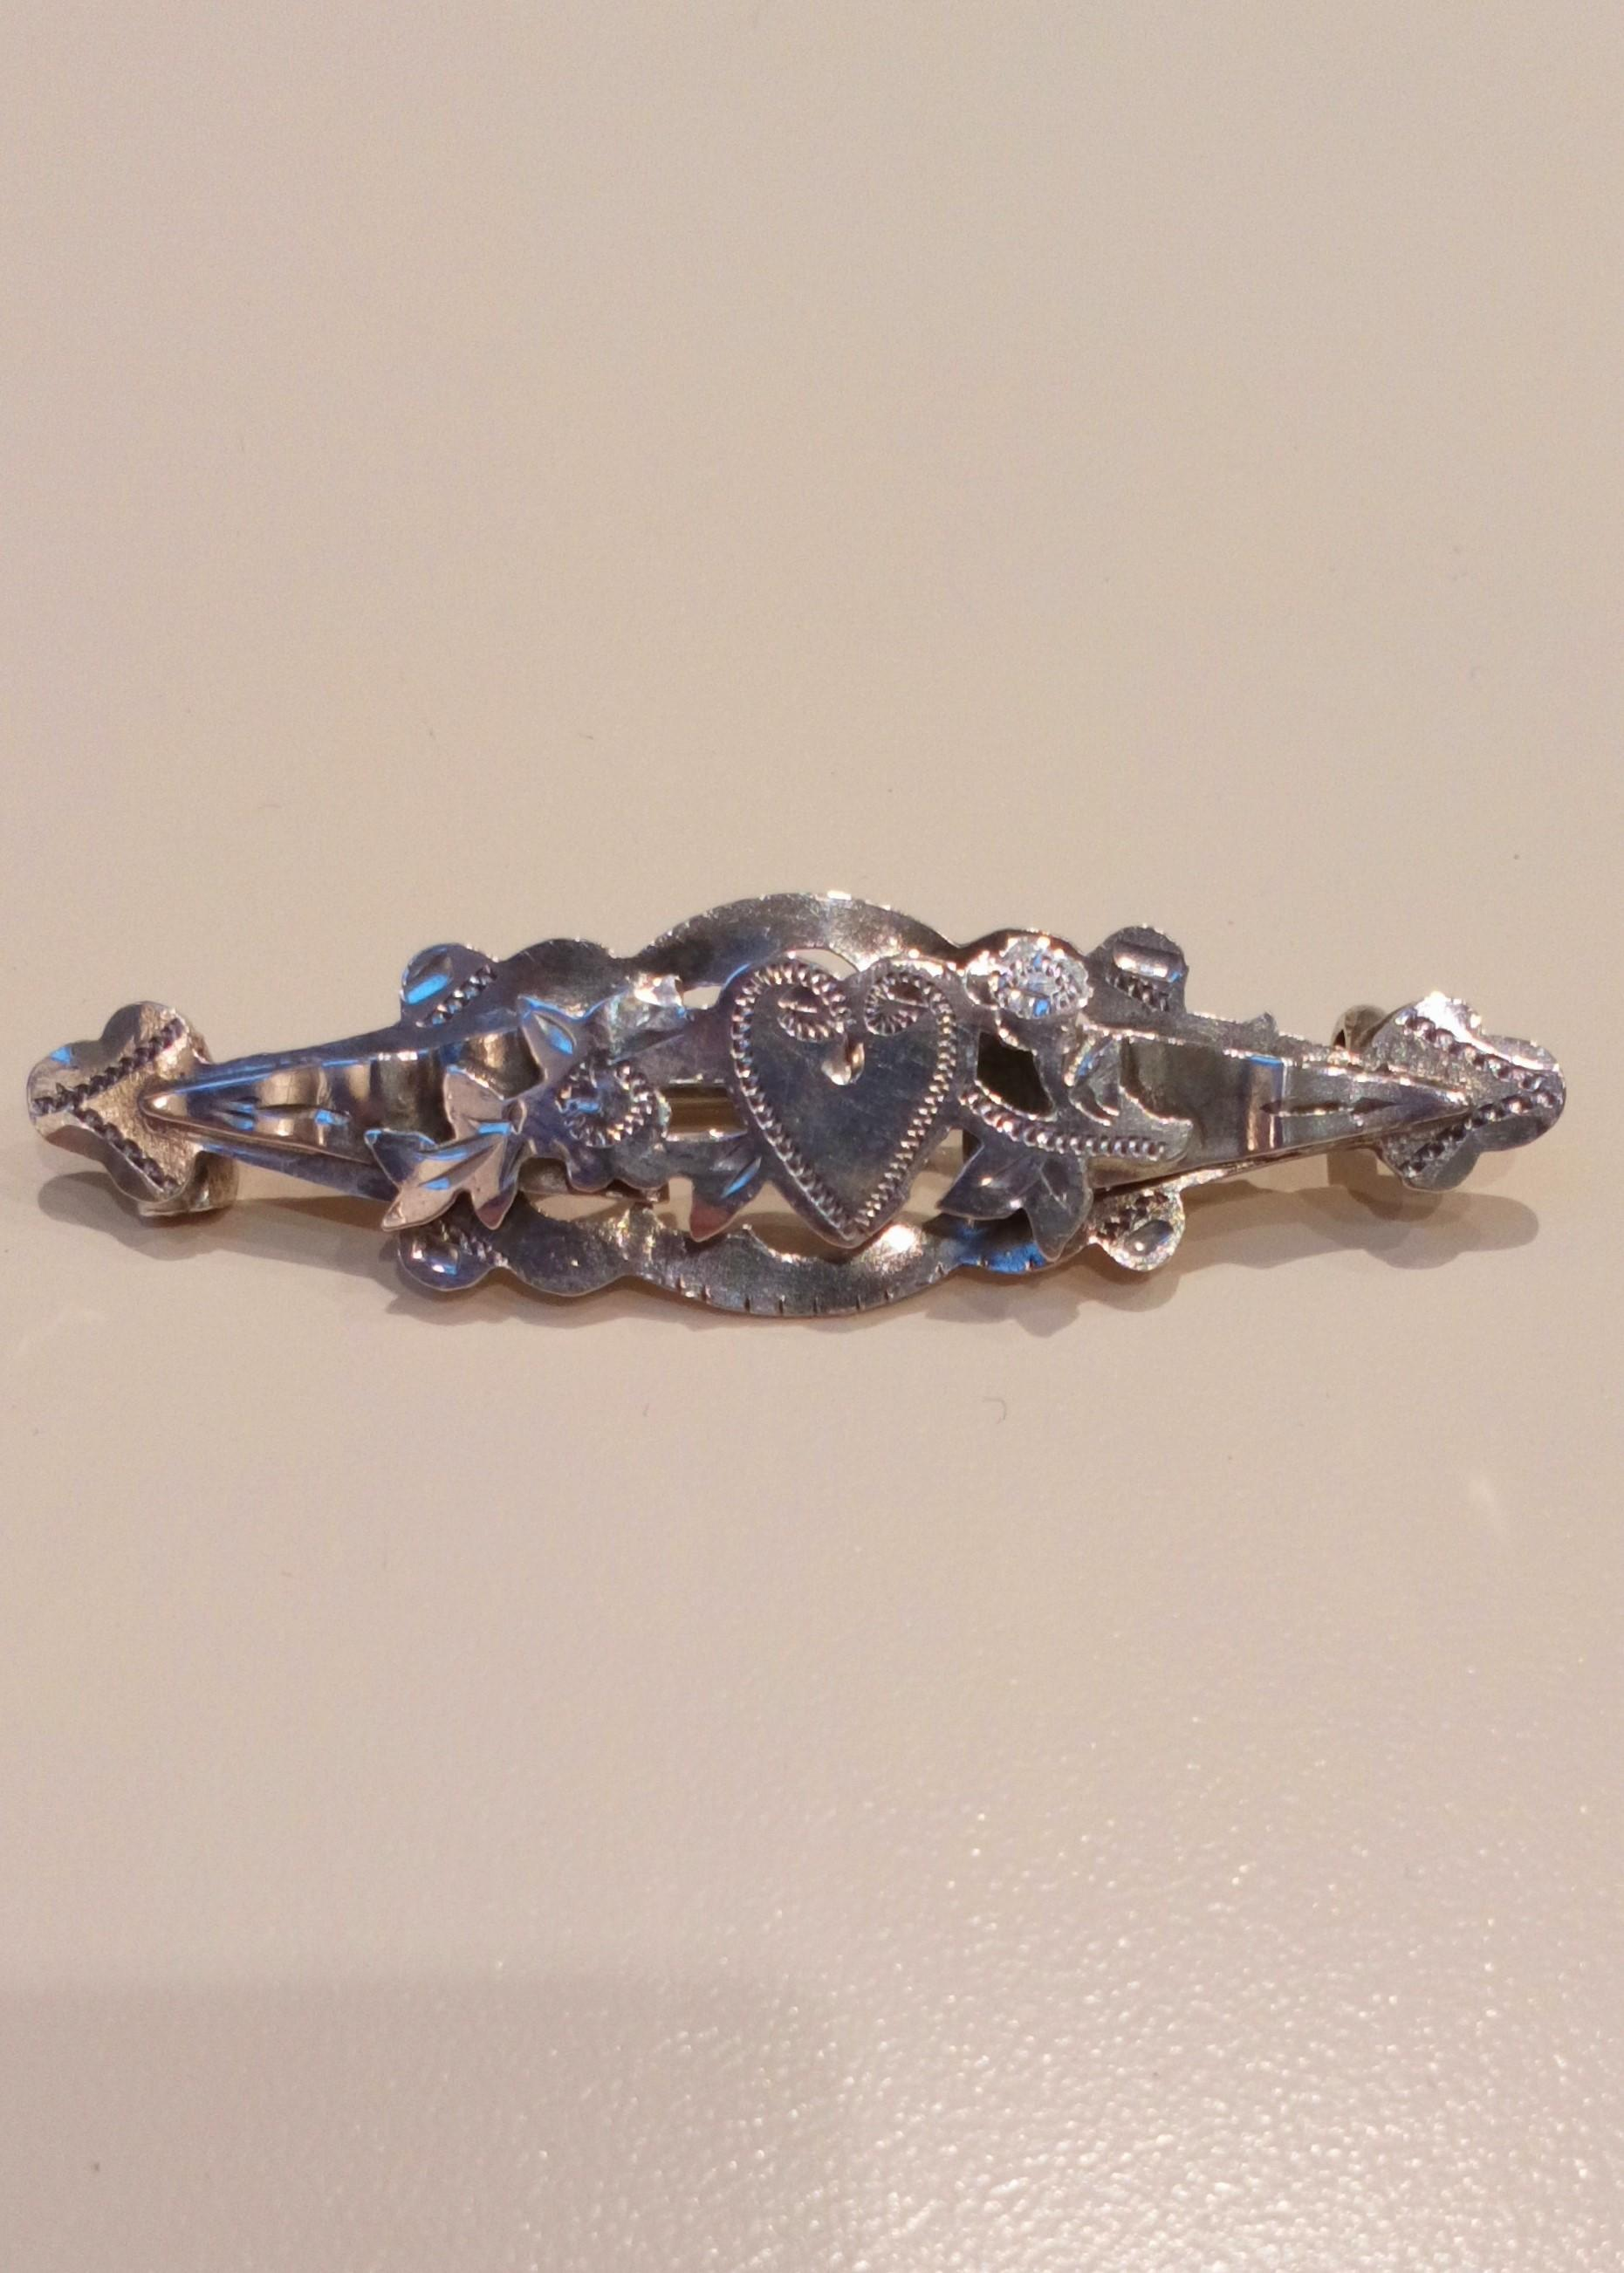 Antique Silver Sweetheart Brooch Heart and Flowers hallmarked silver Birmingham  1917 1918 Maker Pearce and Thompson